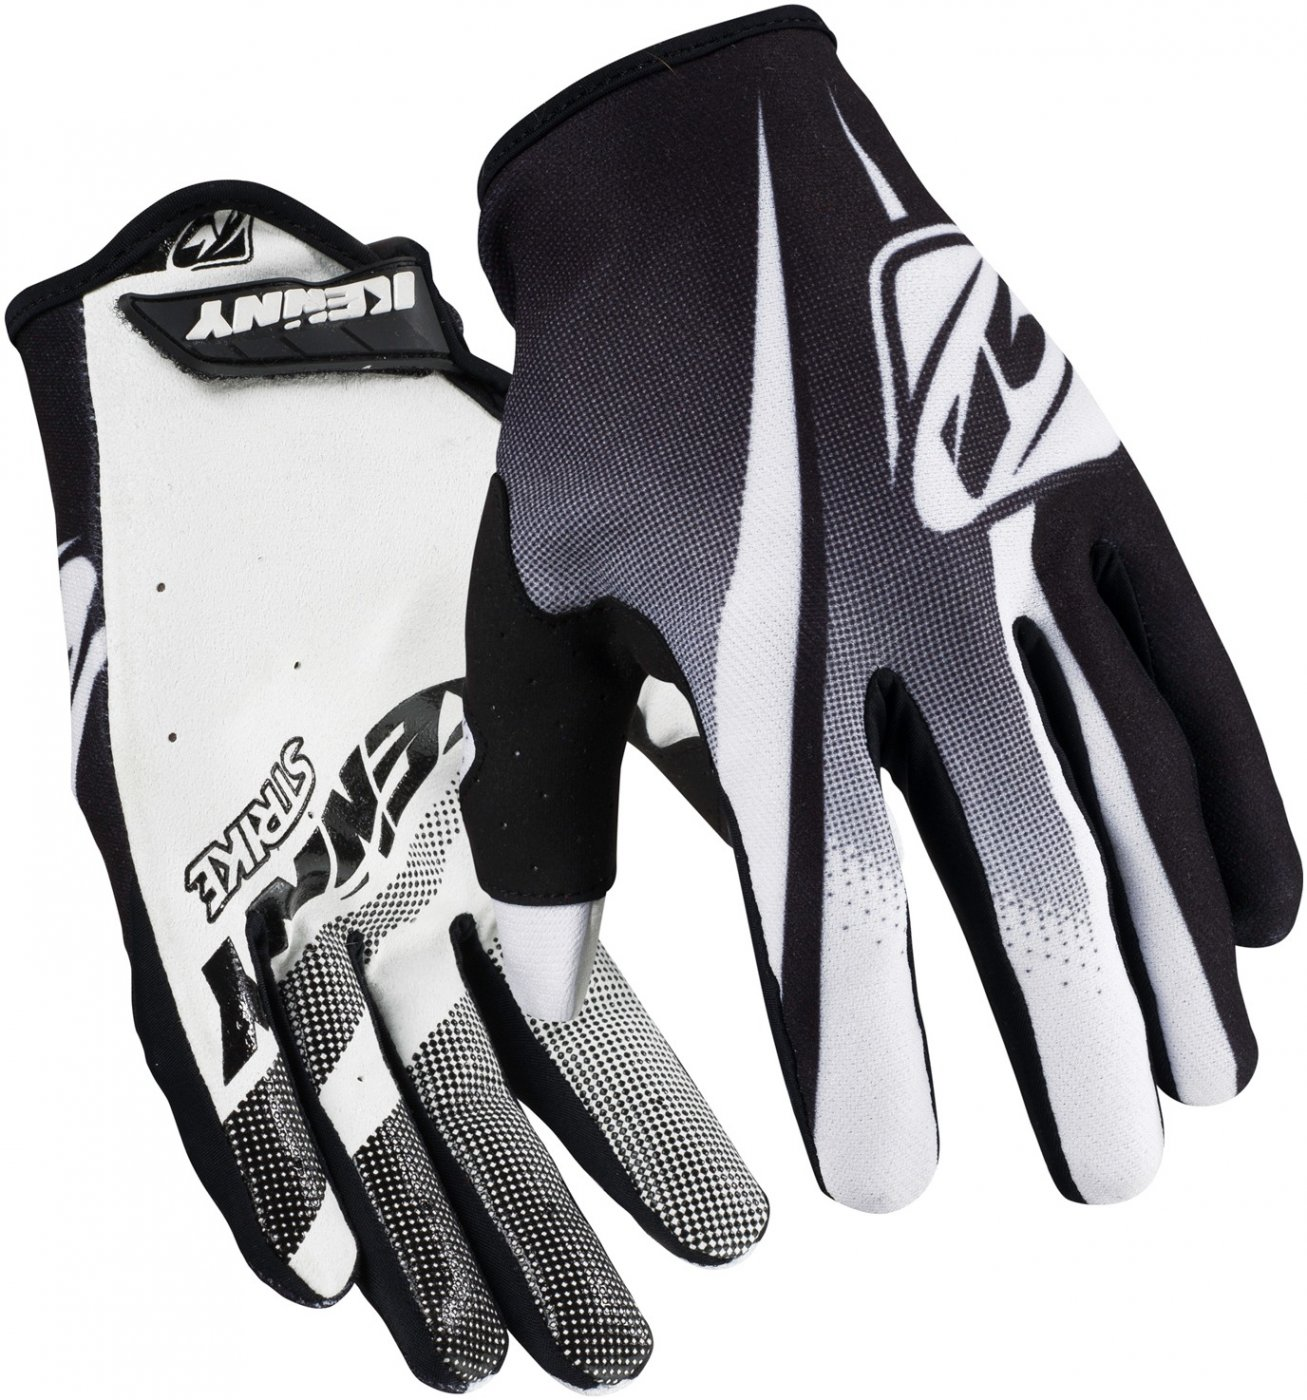 KENNY rukavice STRIKE 16 black / white